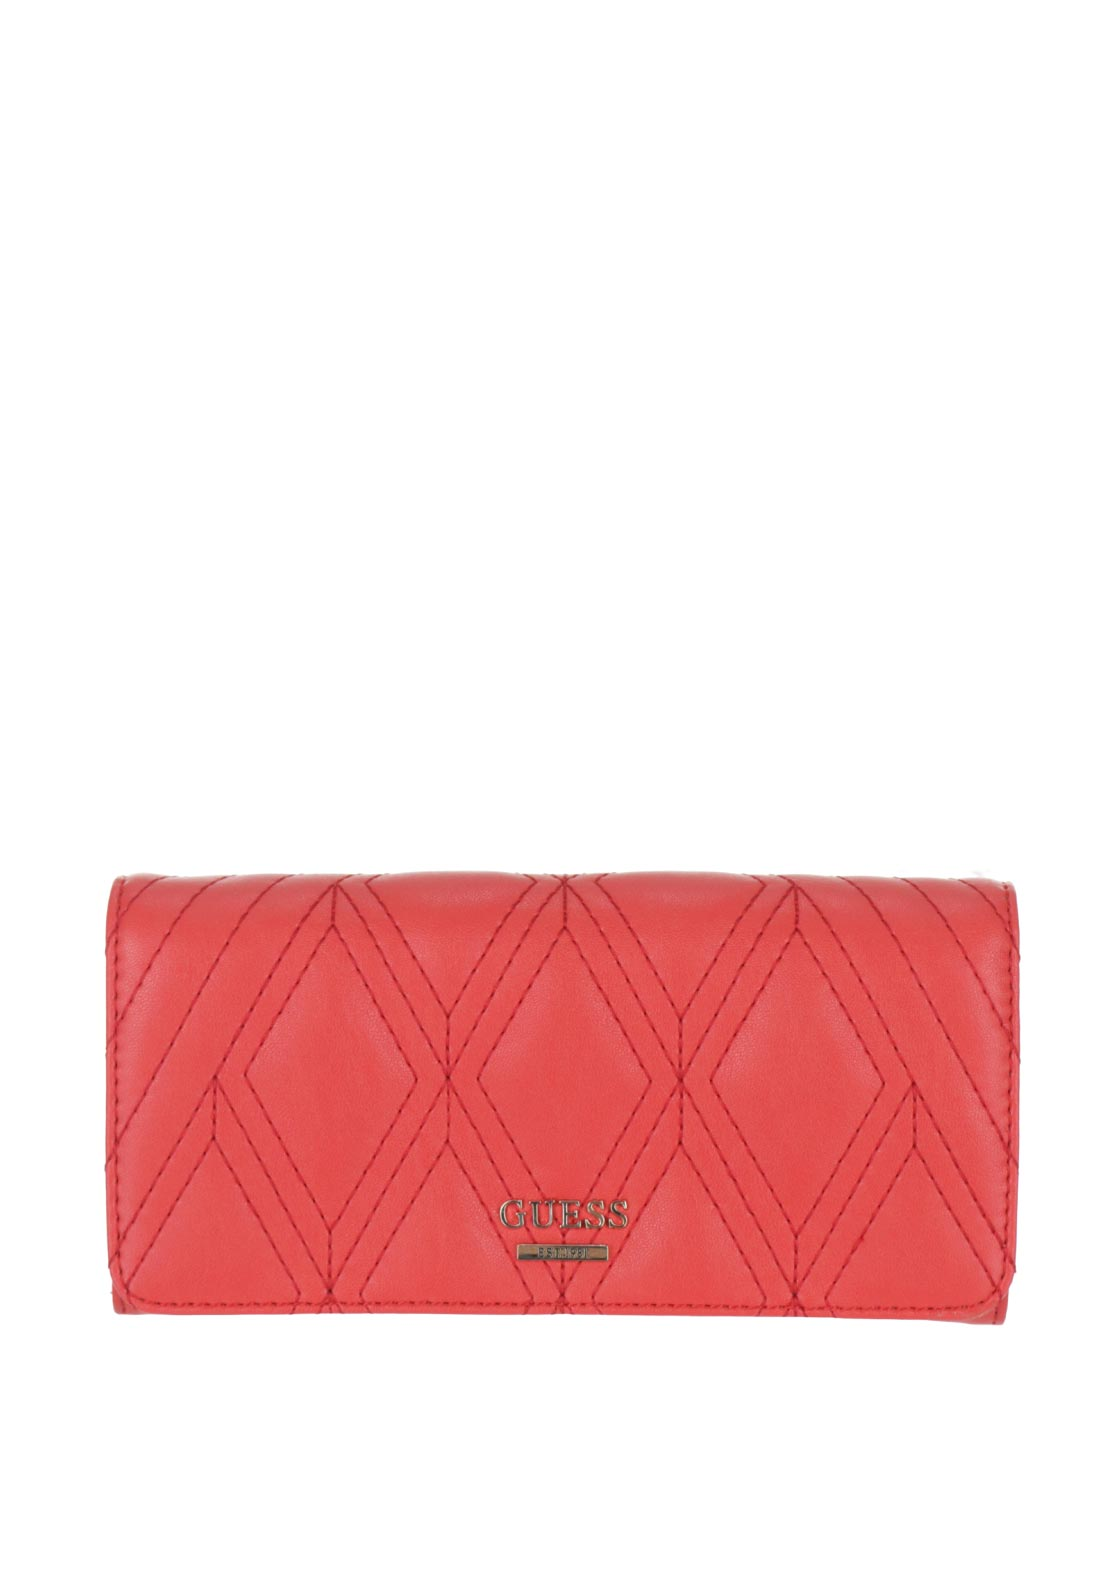 Guess Shea Quilted Large Flap Purse, Tomato Red